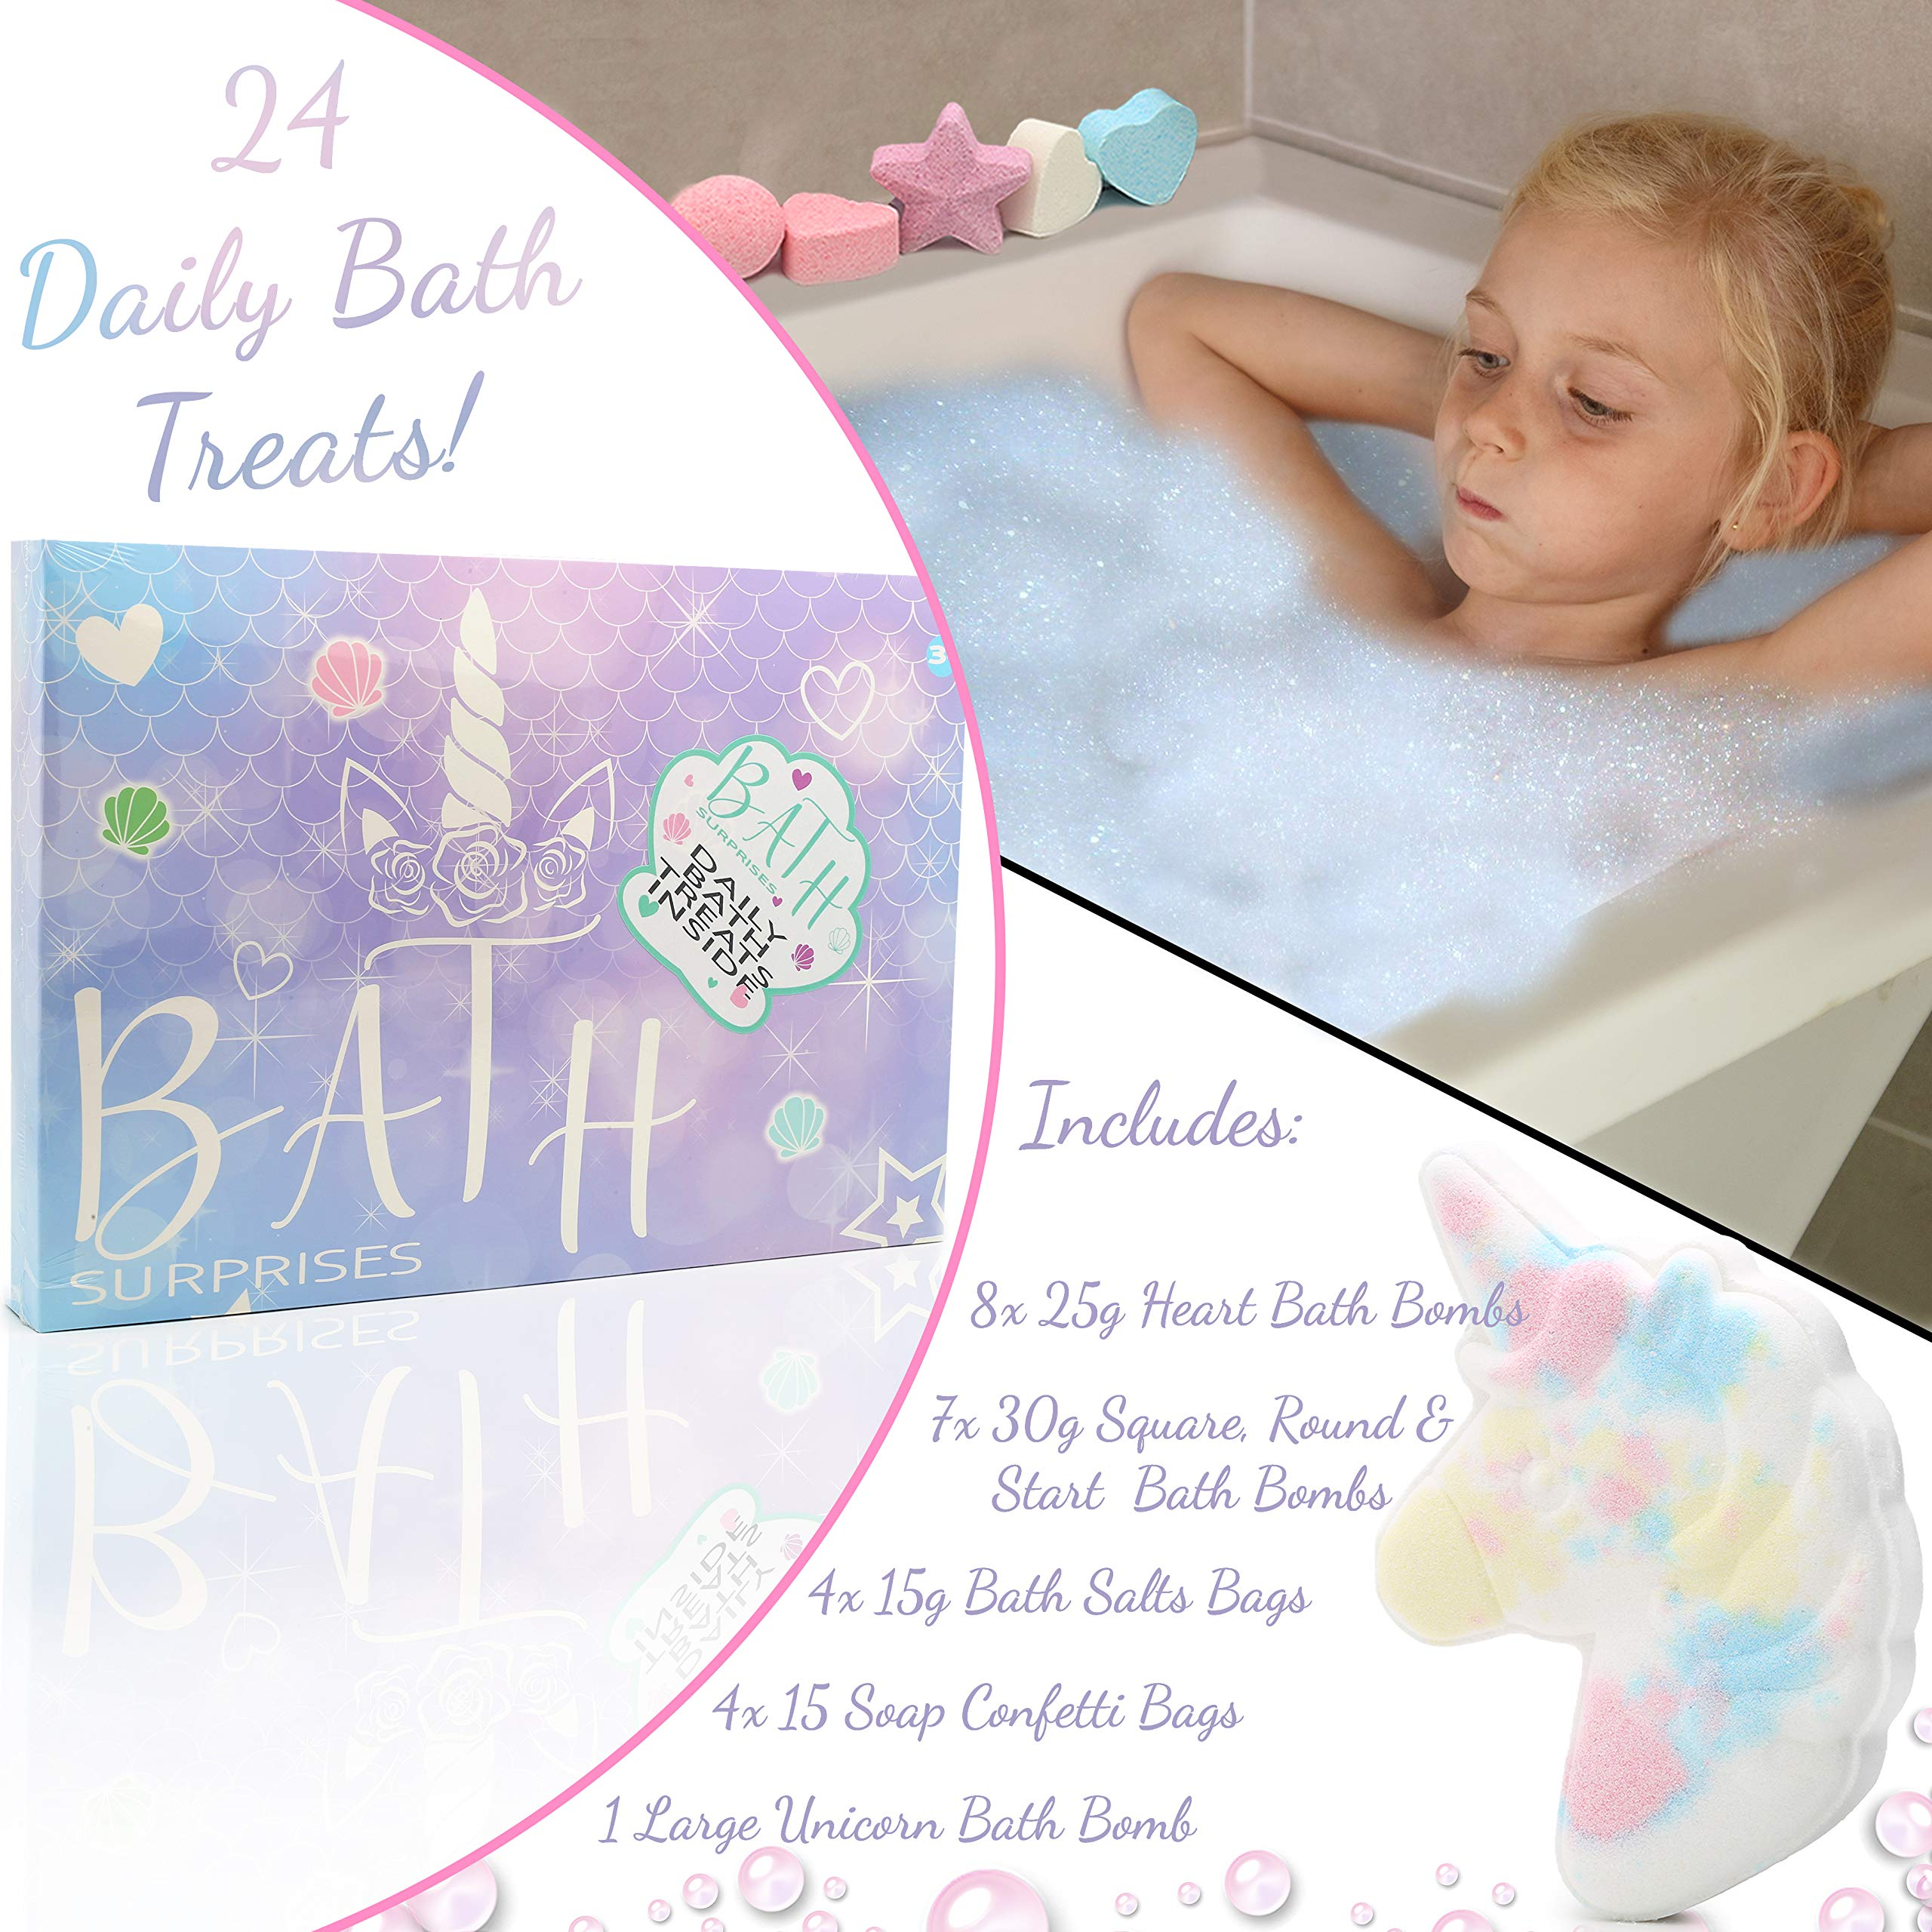 KreativeKraft Unicorn Bath Bomb Surprises Gift Set includes 24 Scented Cosmetics Bath Bombs Confetti and Salts | Fragrance Pamper Present Idea For Girls | Kids Bathbomb Set With Ball Heart Cube